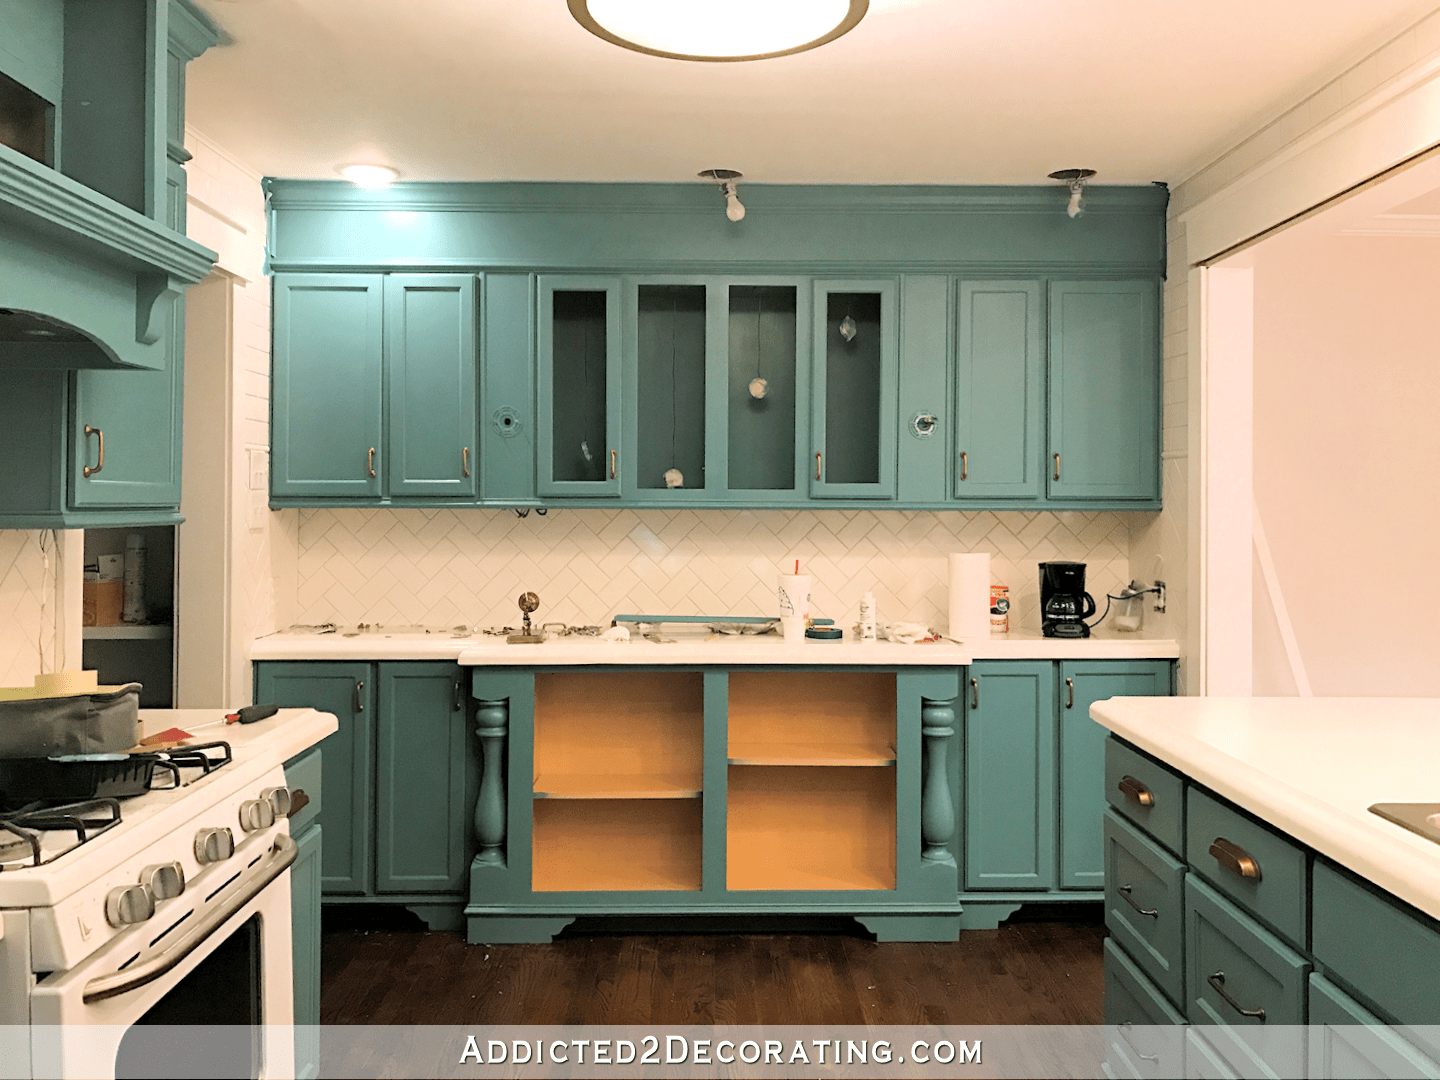 Kitchen Cabinets Wall Teal Kitchen Cabinets Audidatlevante